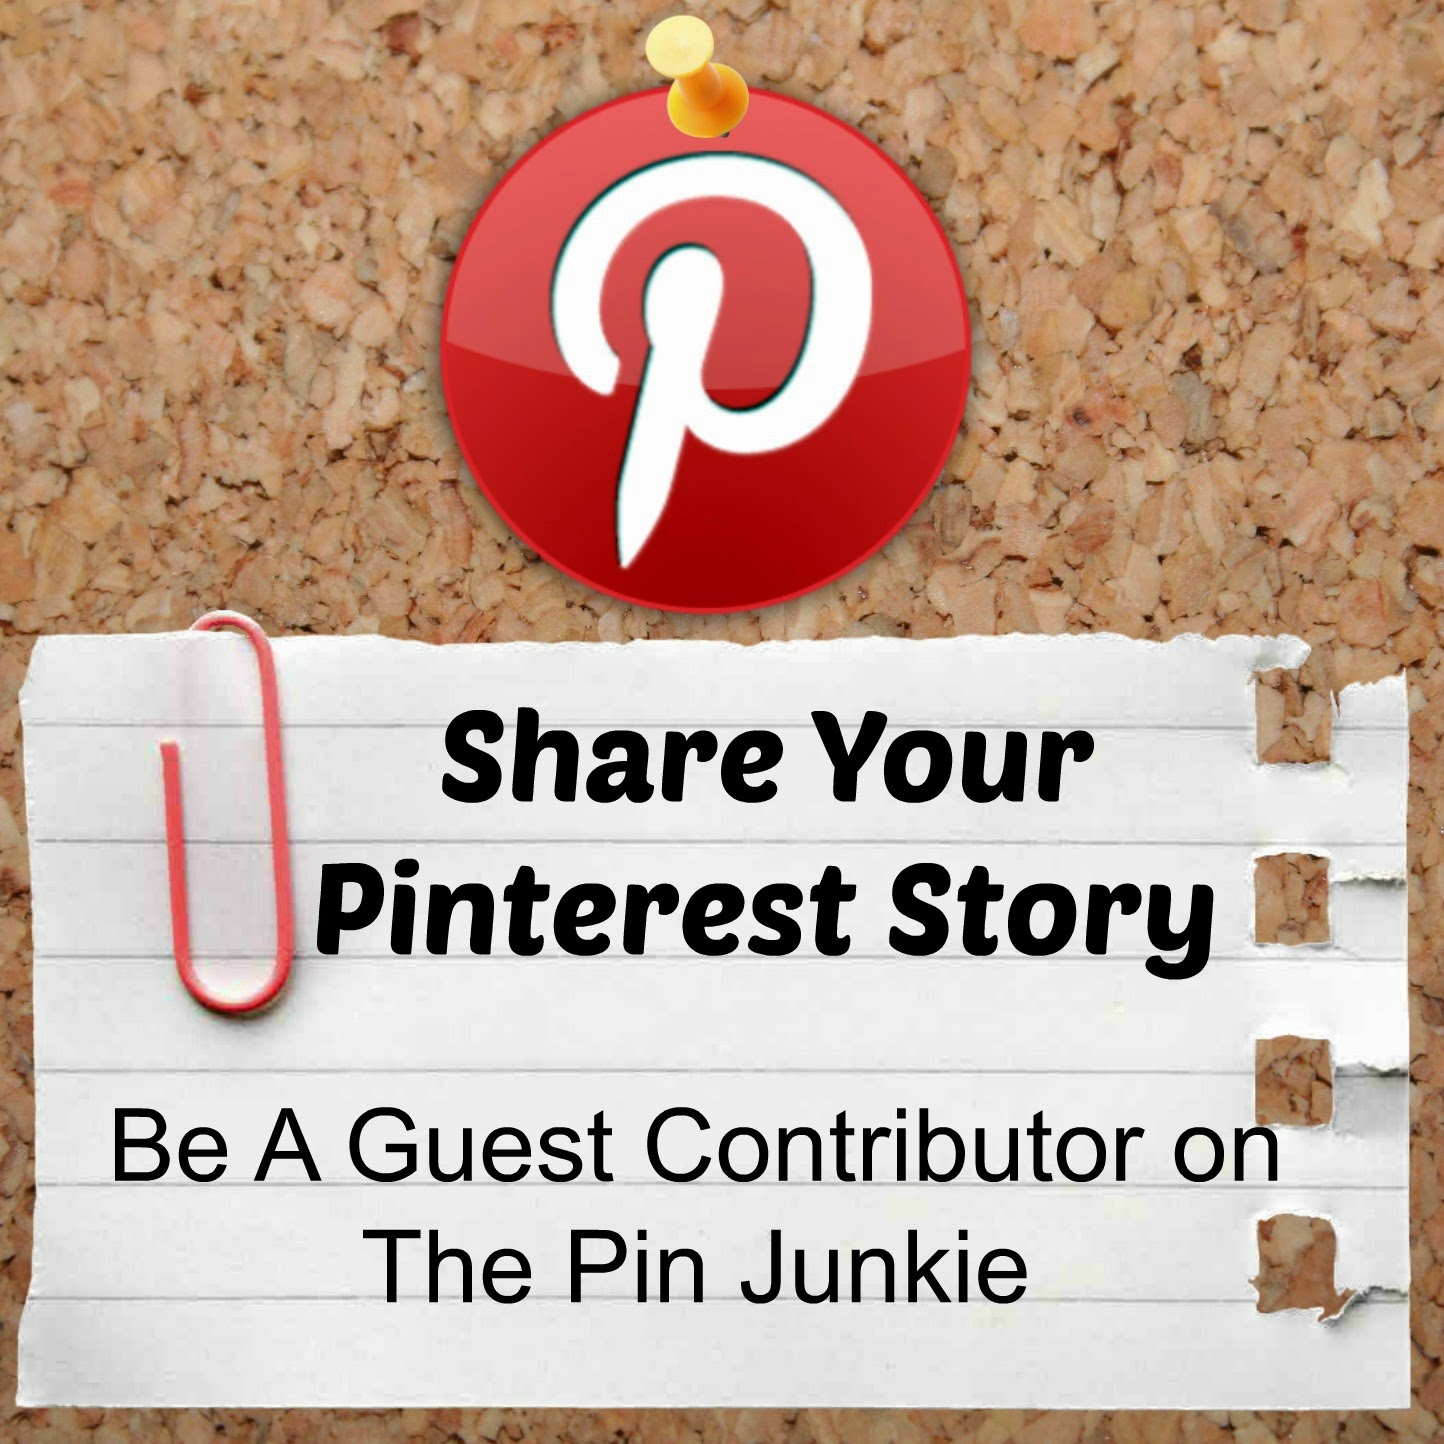 http://www.thepinjunkie.com/p/share-your-pinterest-story.html